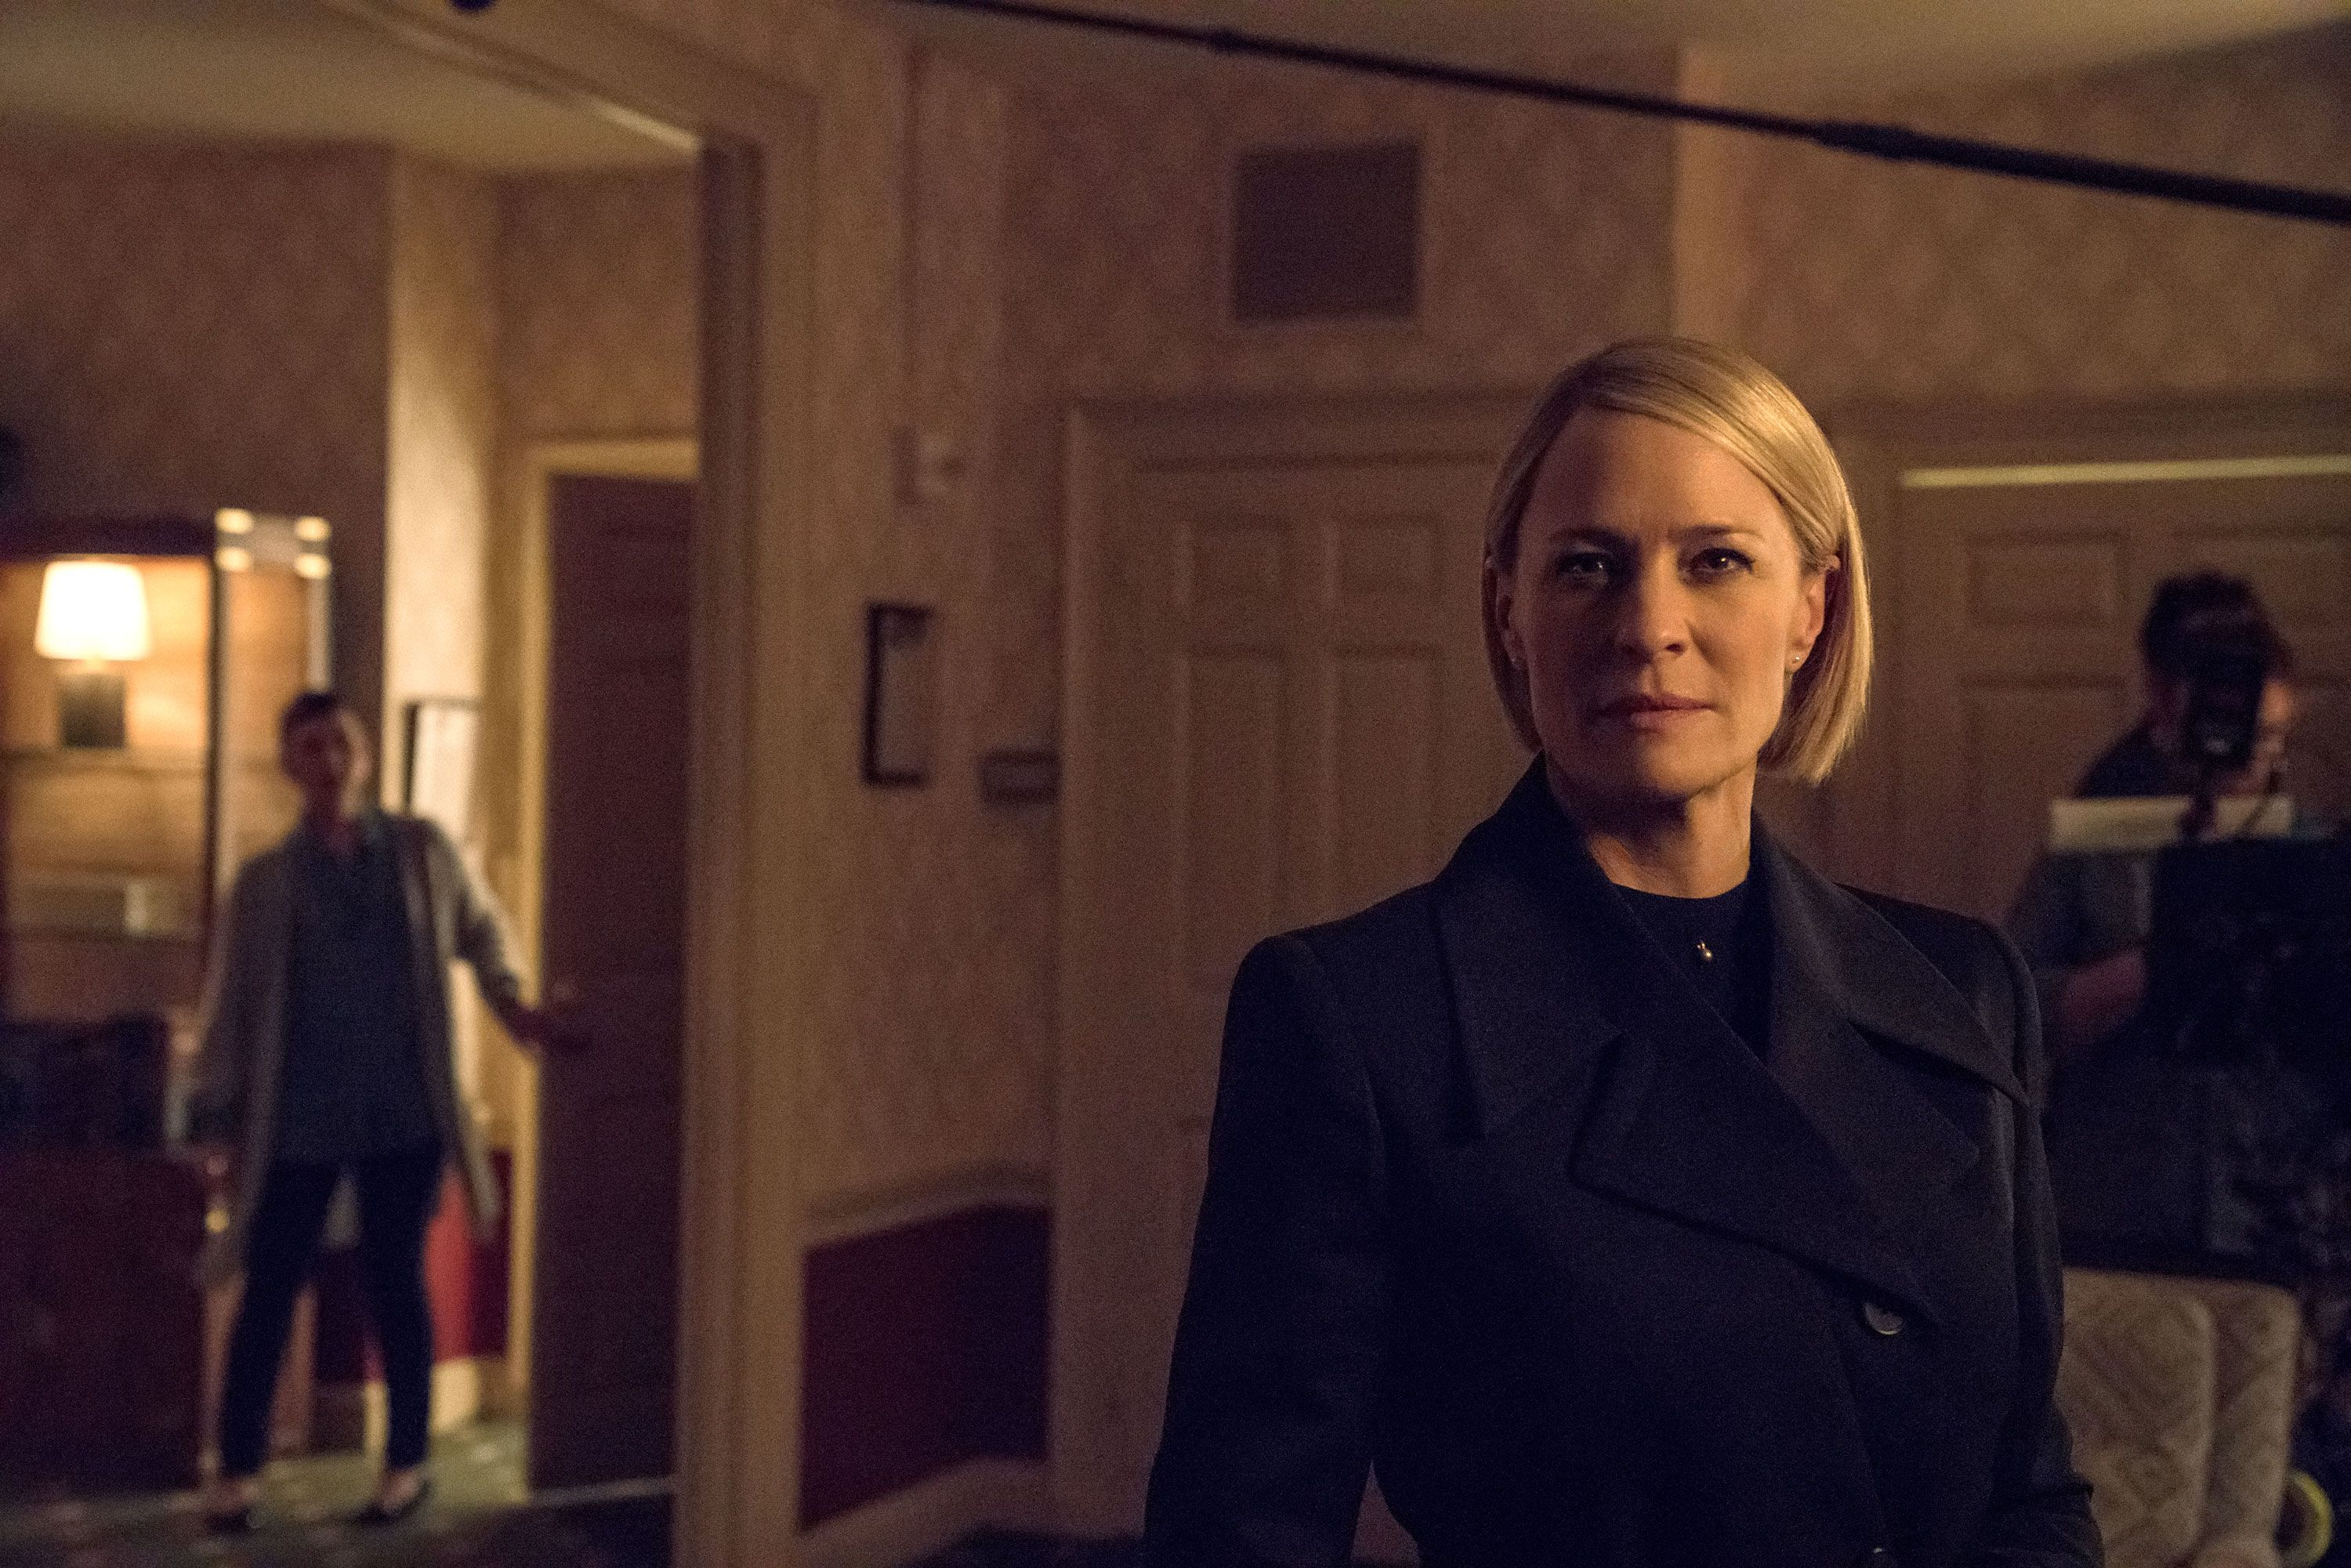 House of Cards season 6 on Netflix: Cast, episodes, release date and